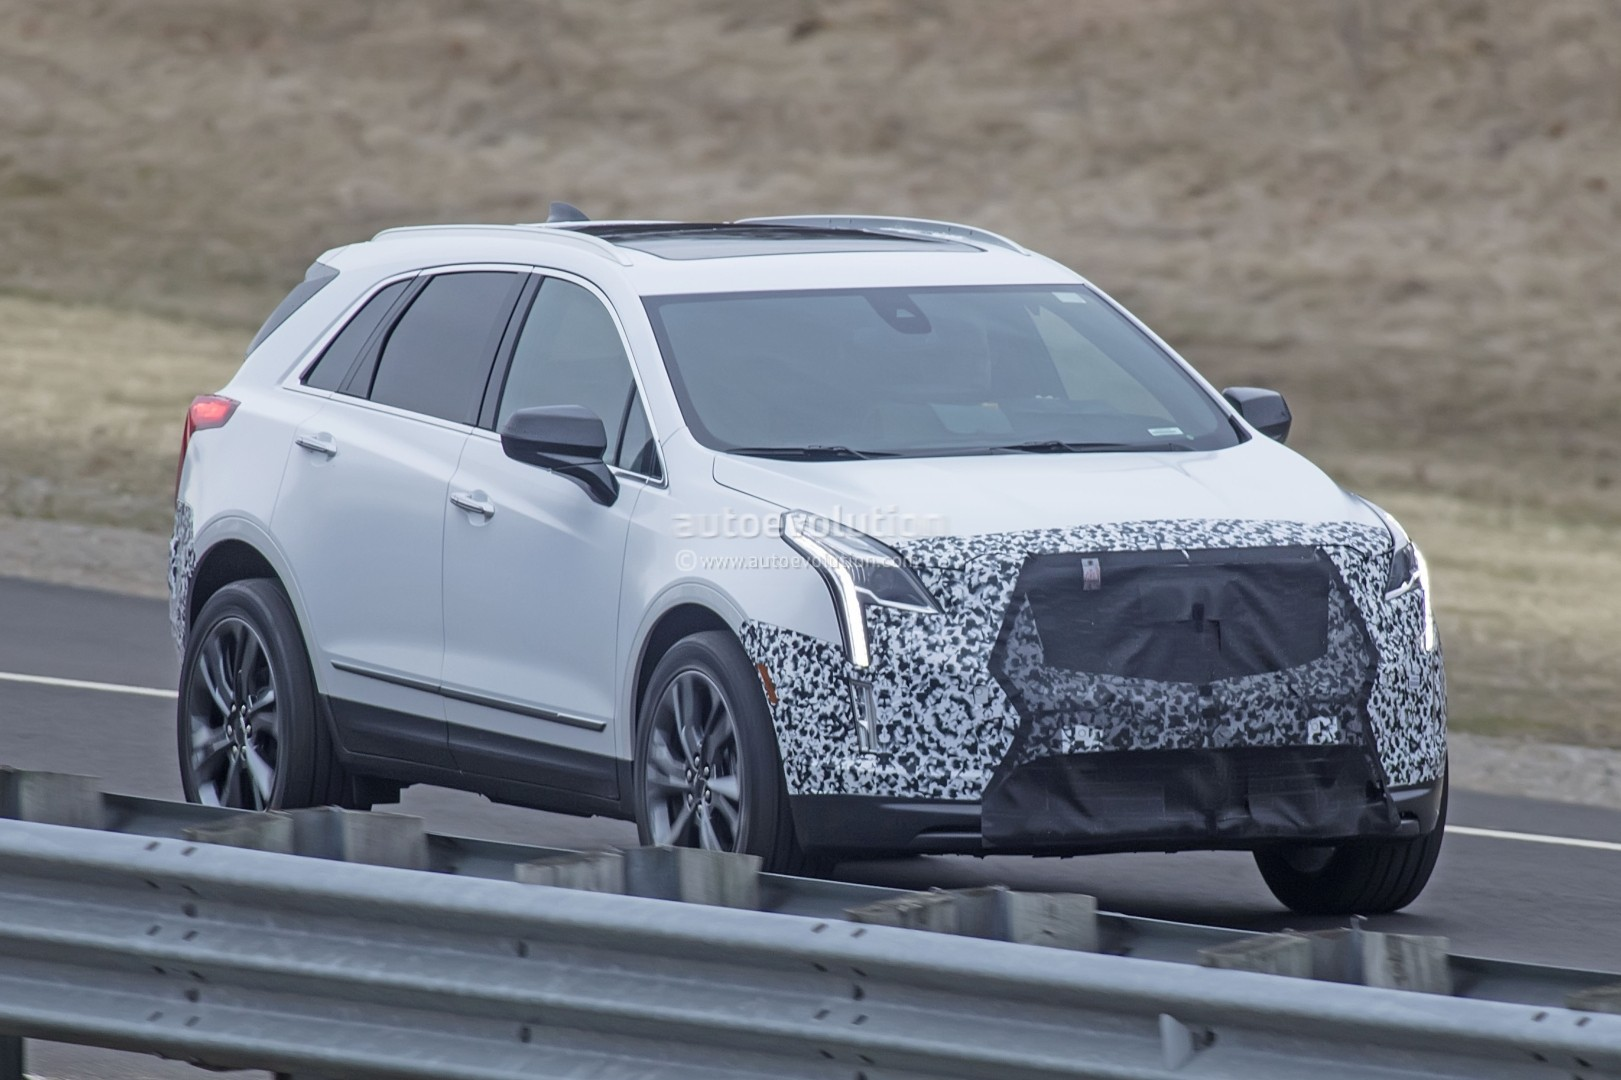 Spy Shots Cadillac Xt5 Price and Review